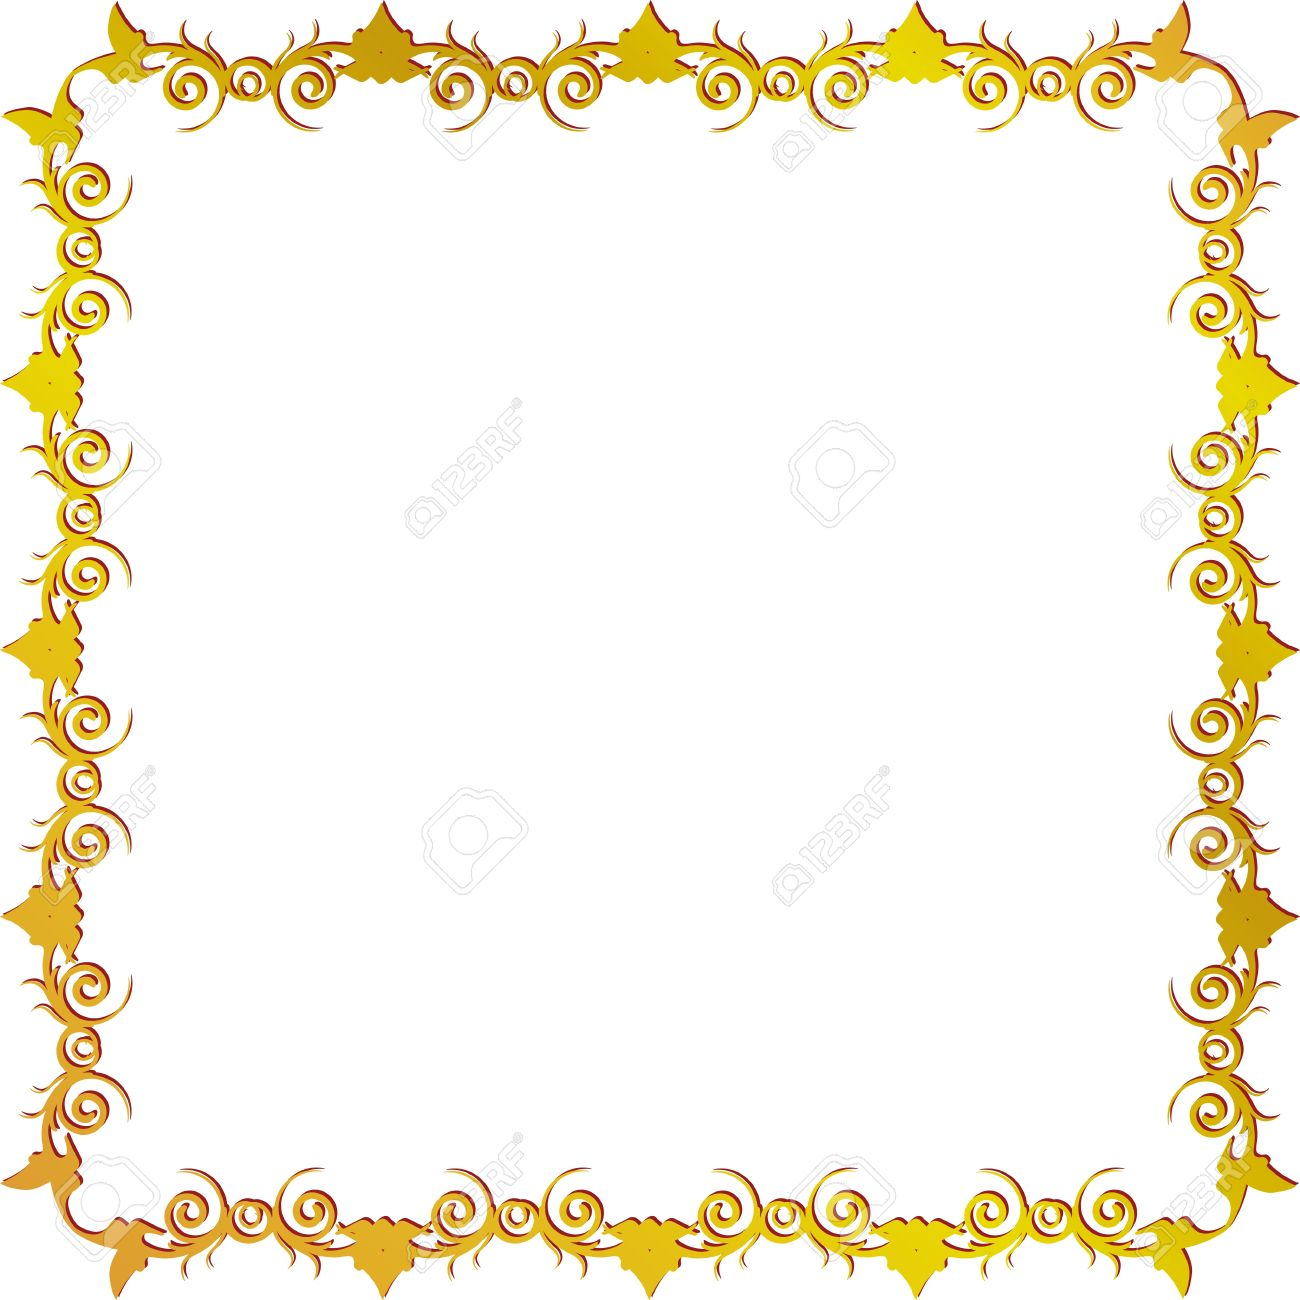 vector golden square frame with leaves